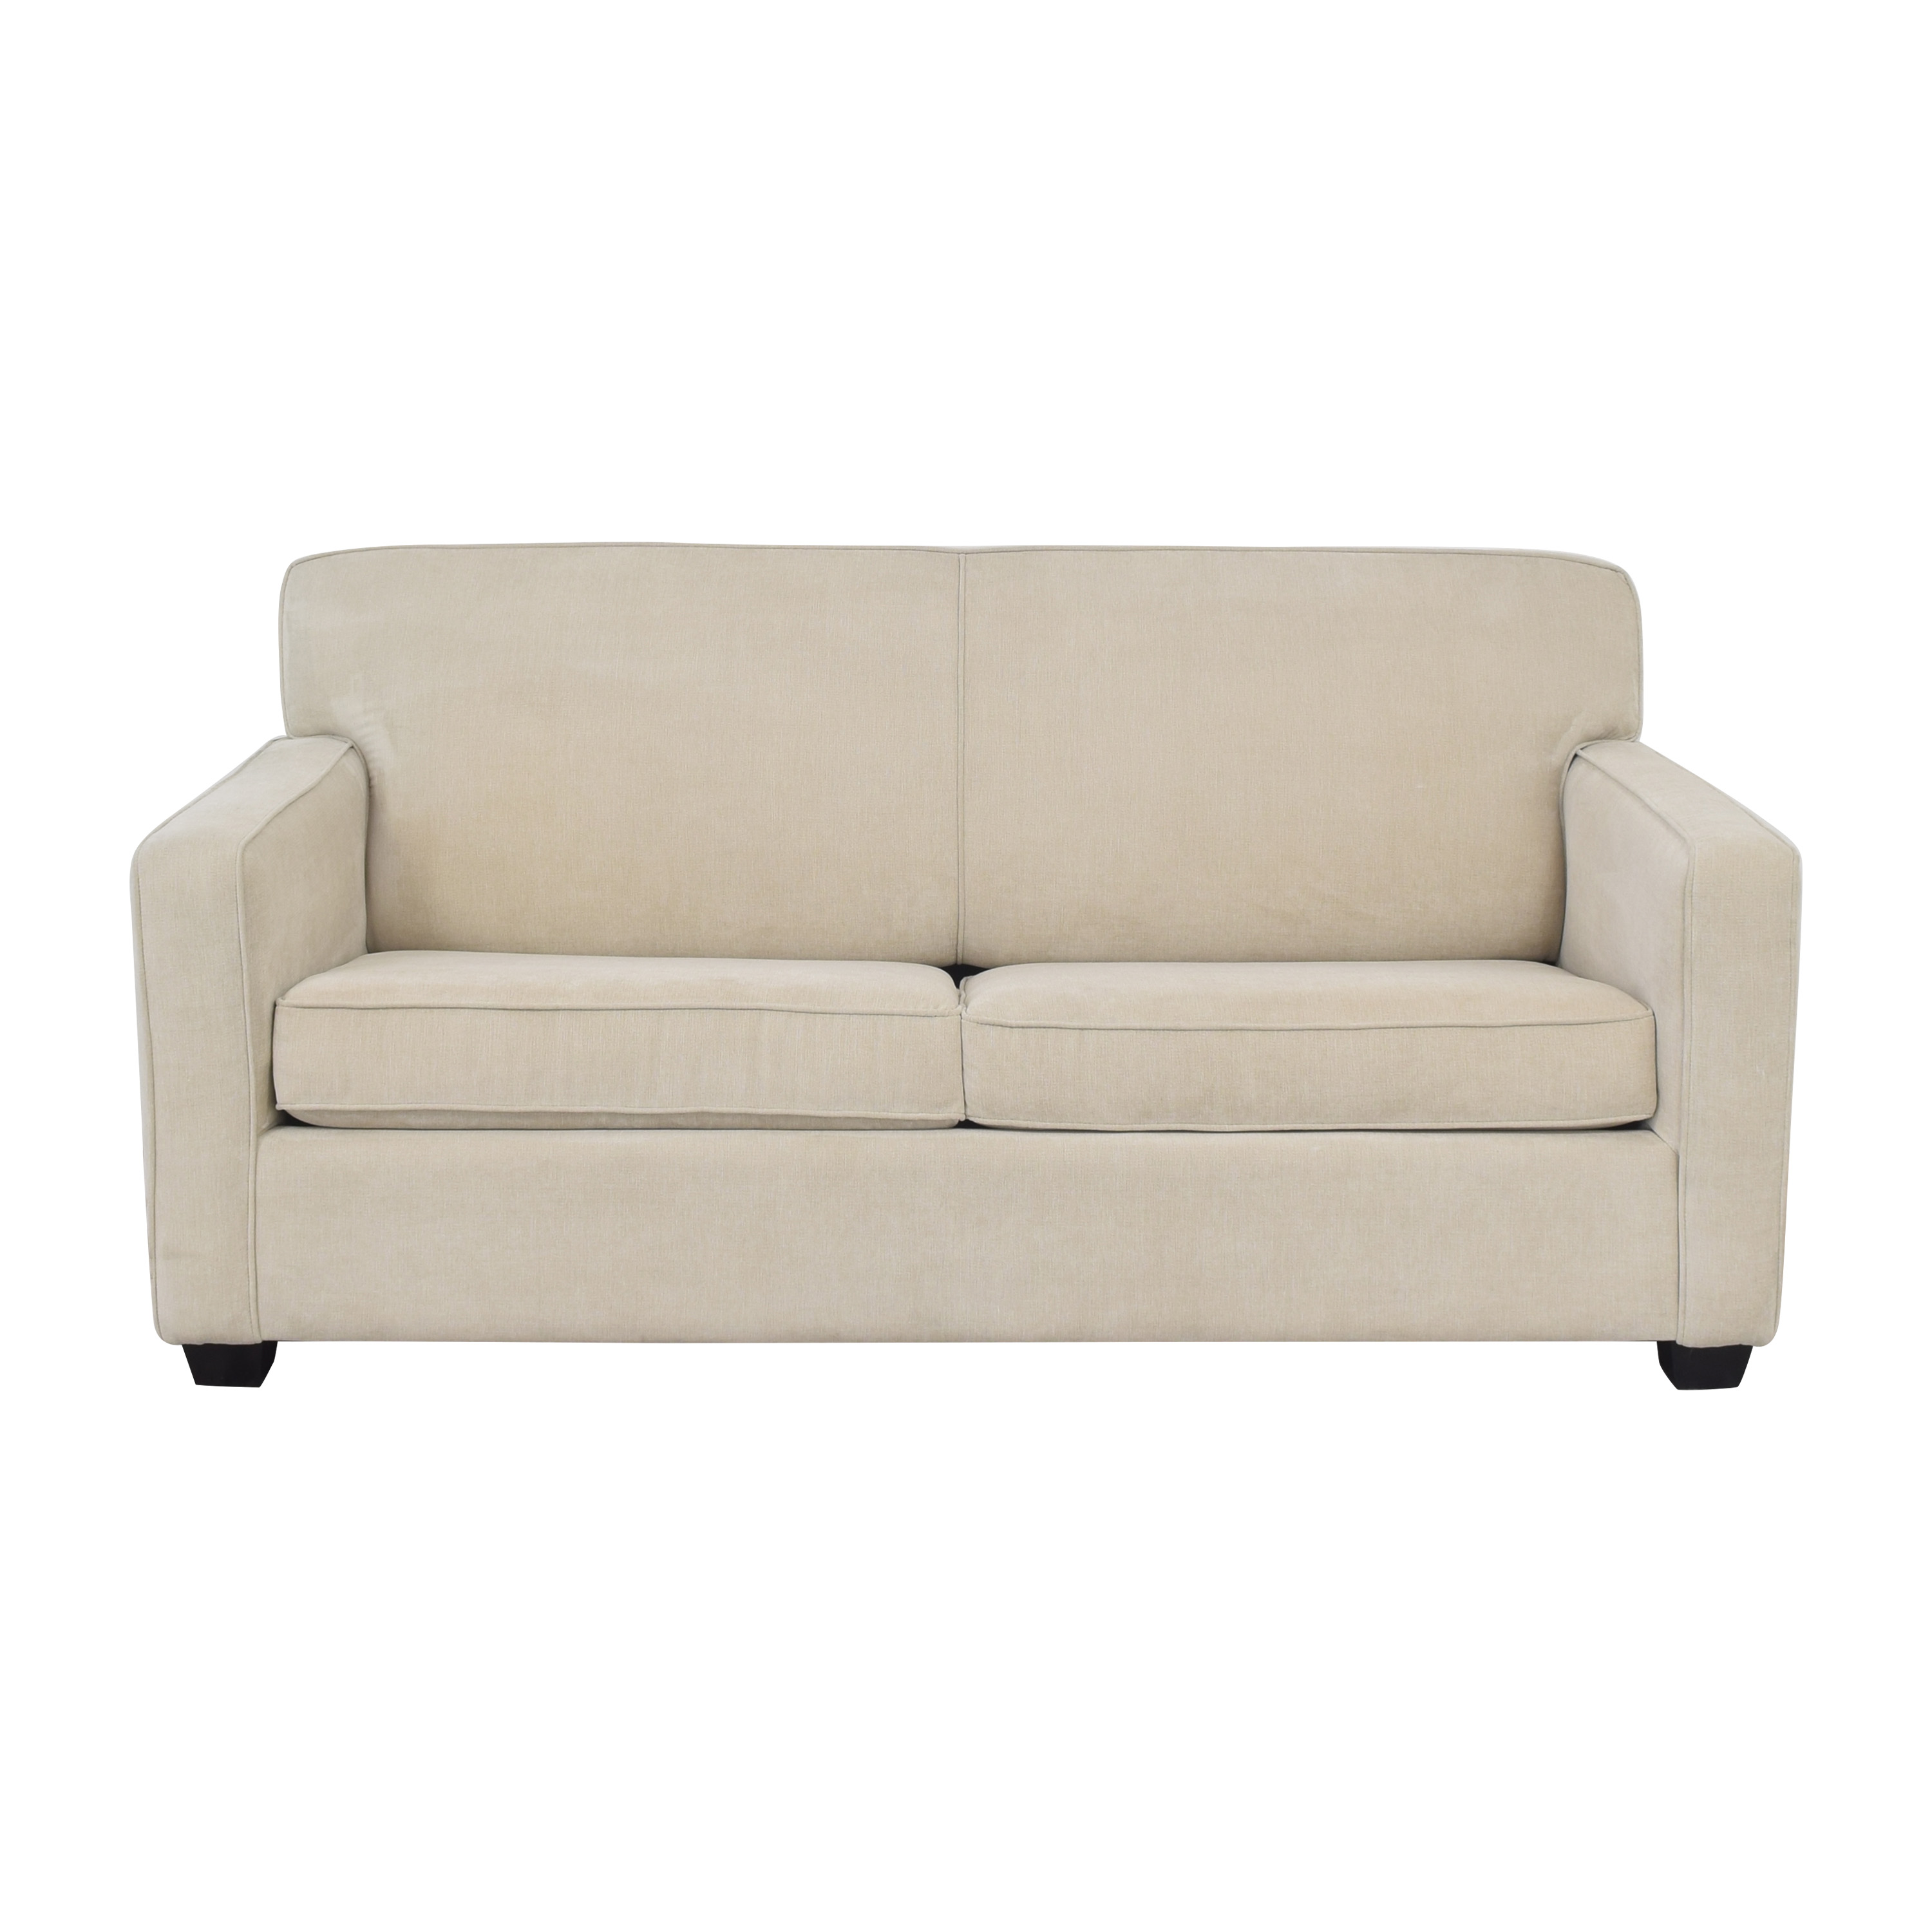 Two Cushion Sleeper Sofa with Pillows Sofa Beds